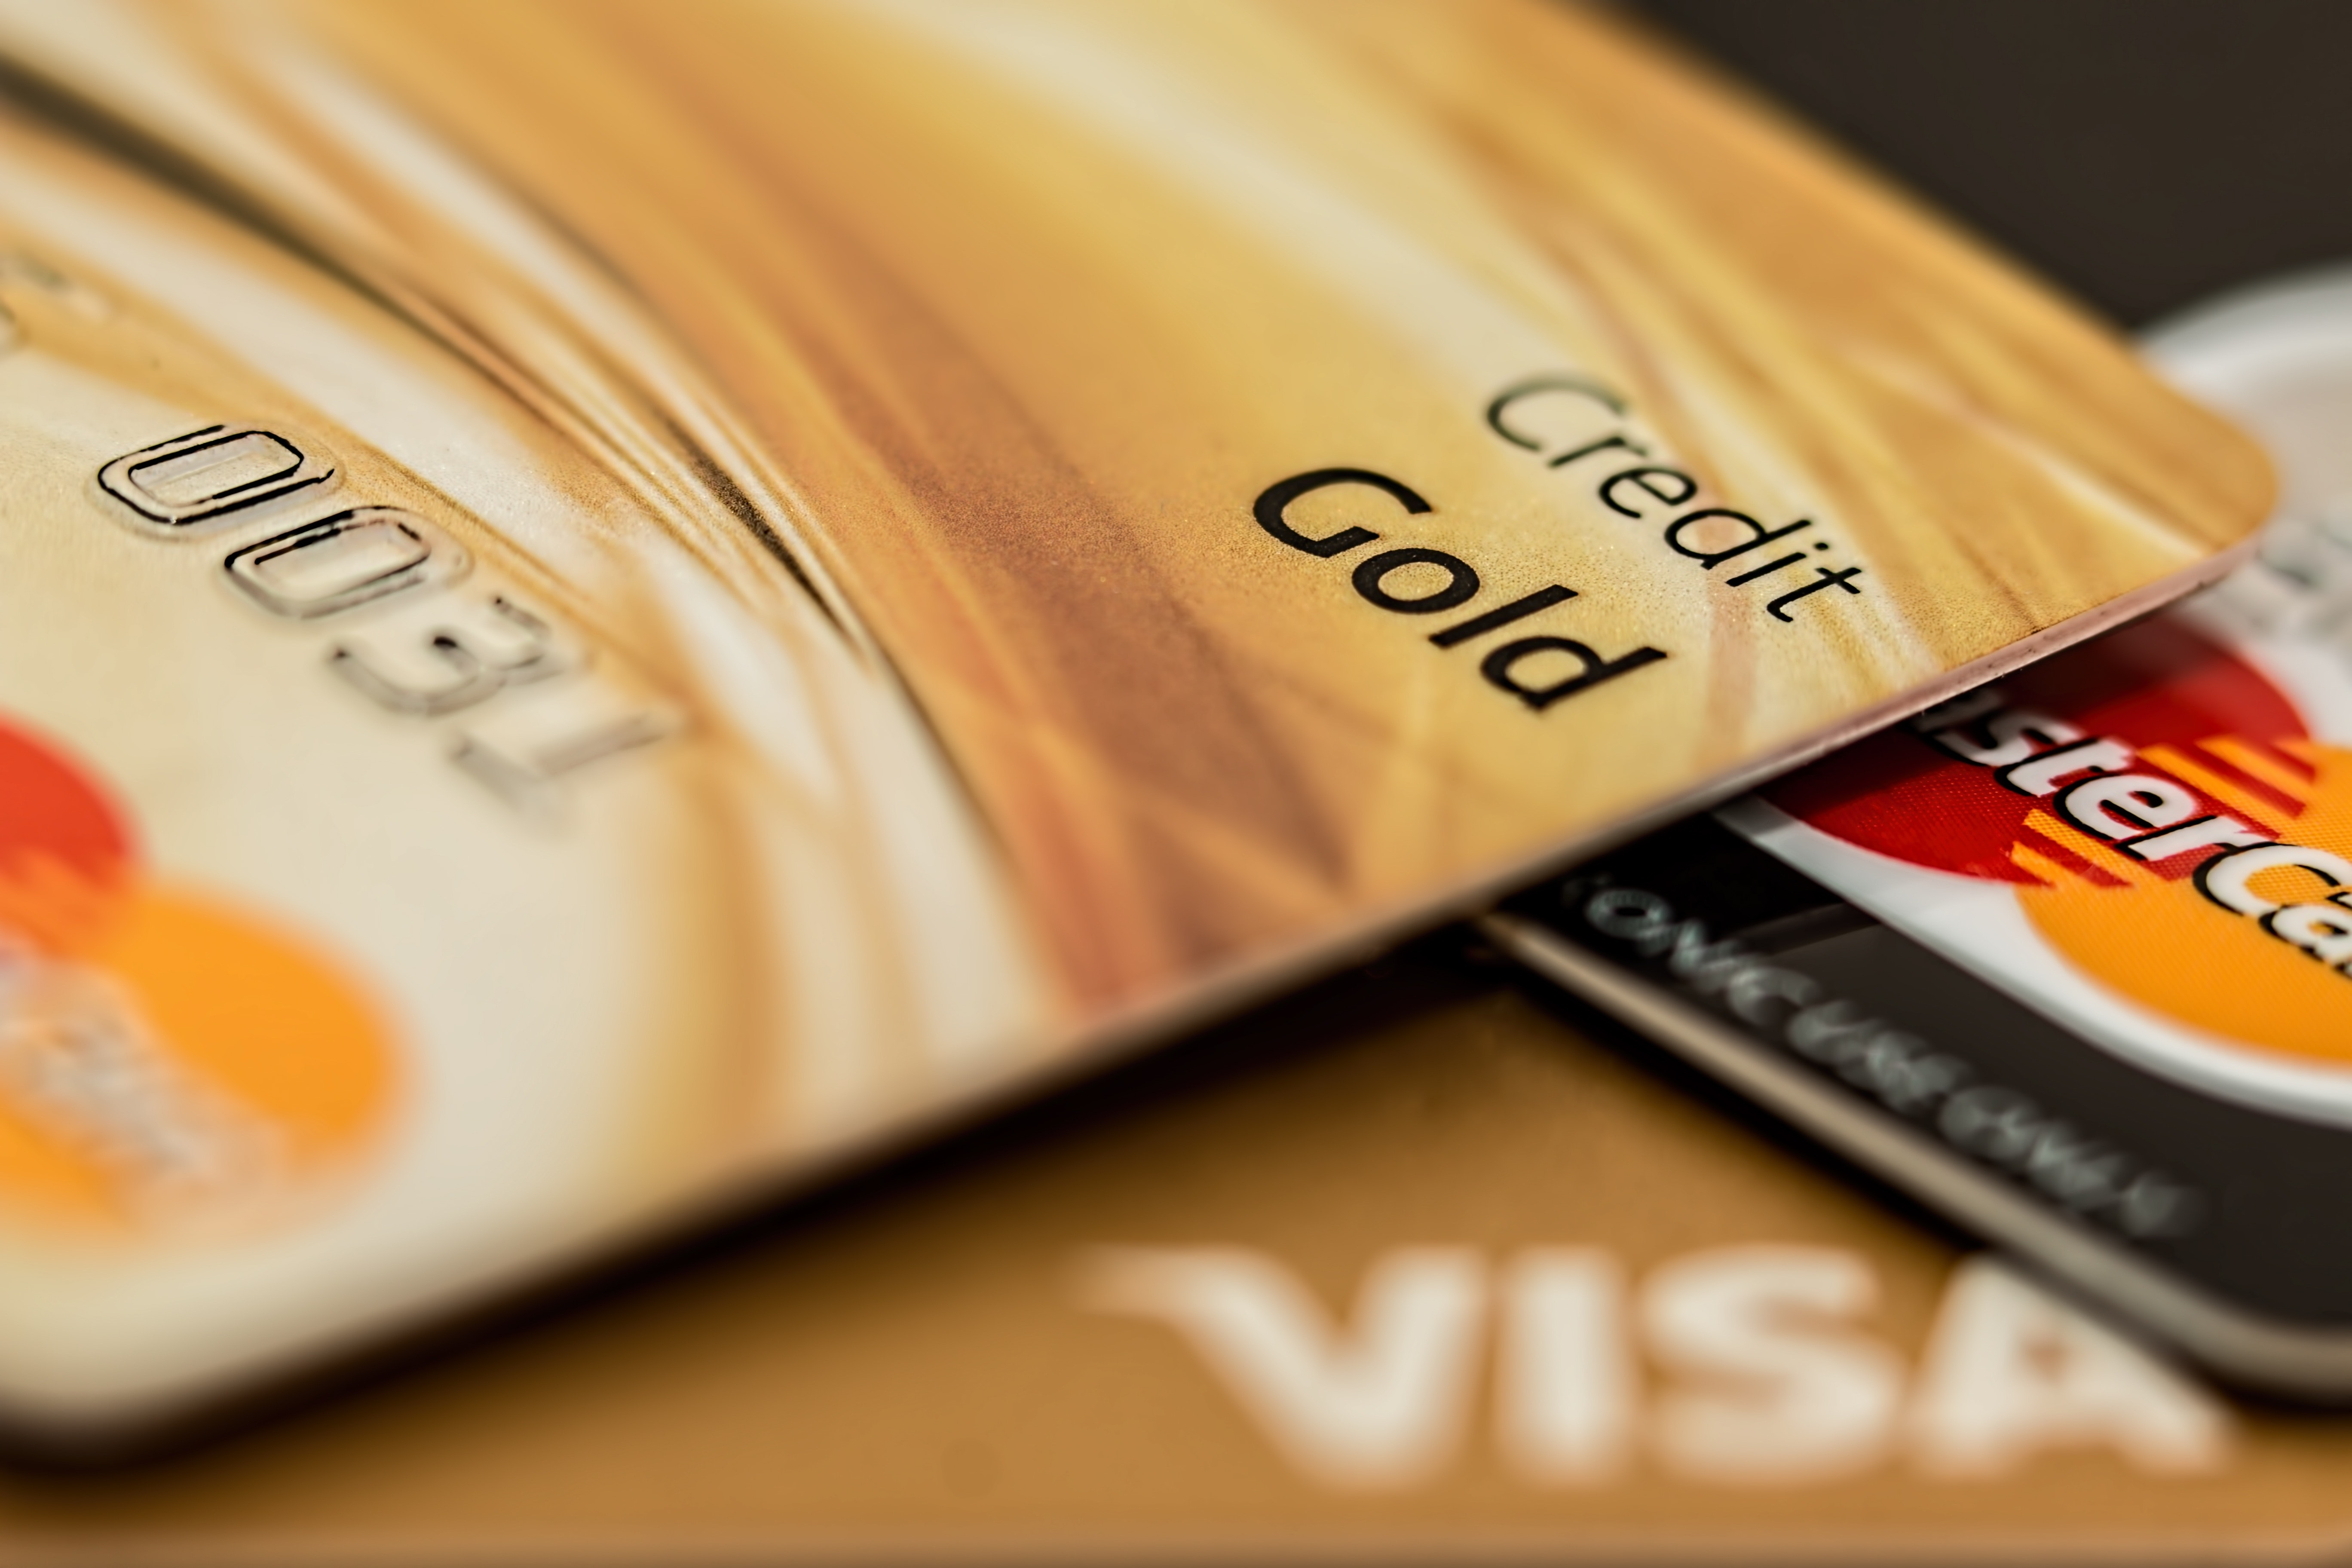 TransferWise and MasterCard partner up: Are you ready for TransferWise debit cards?